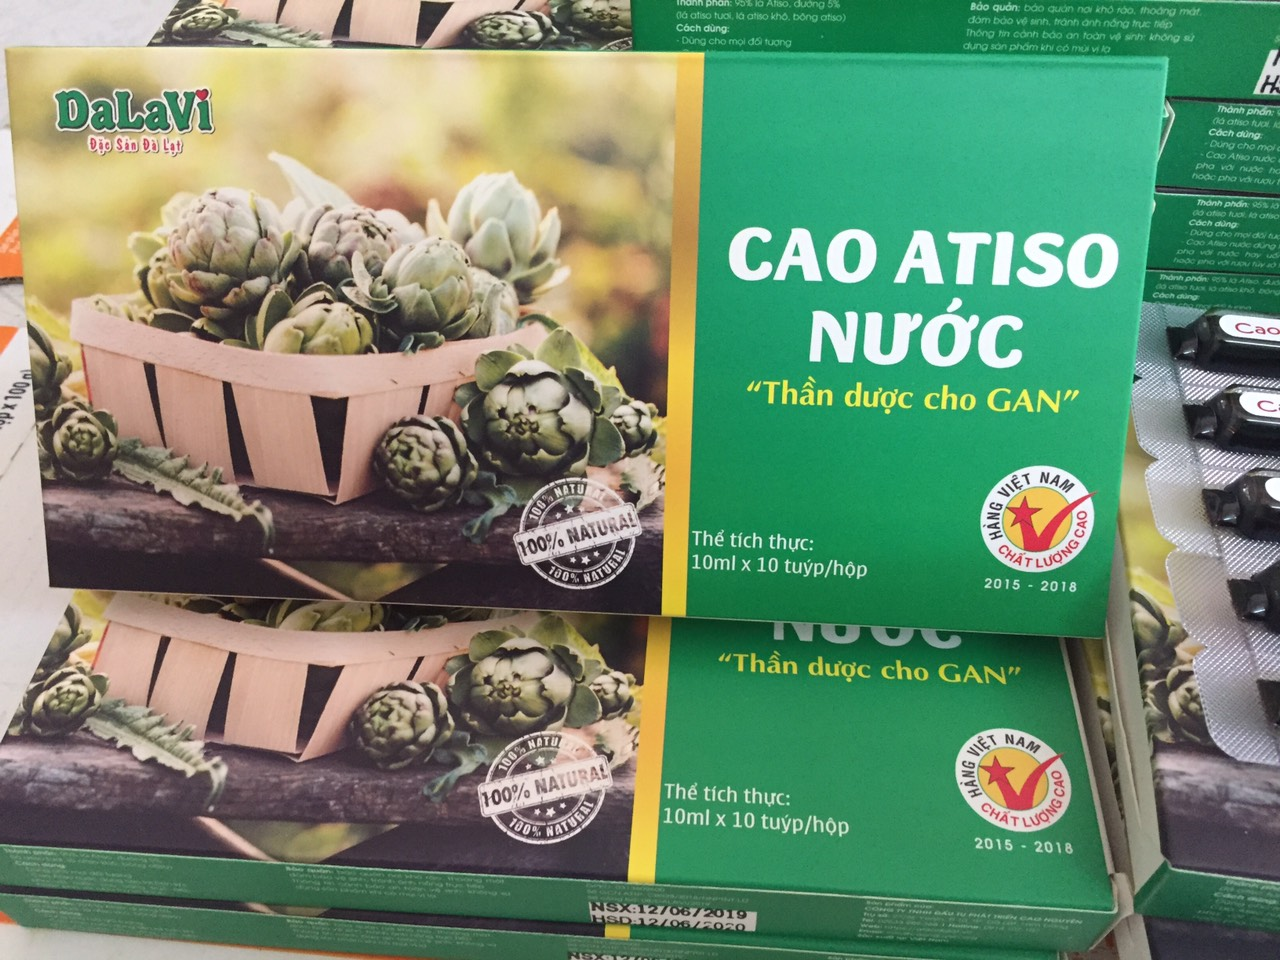 cao atiso nuoc